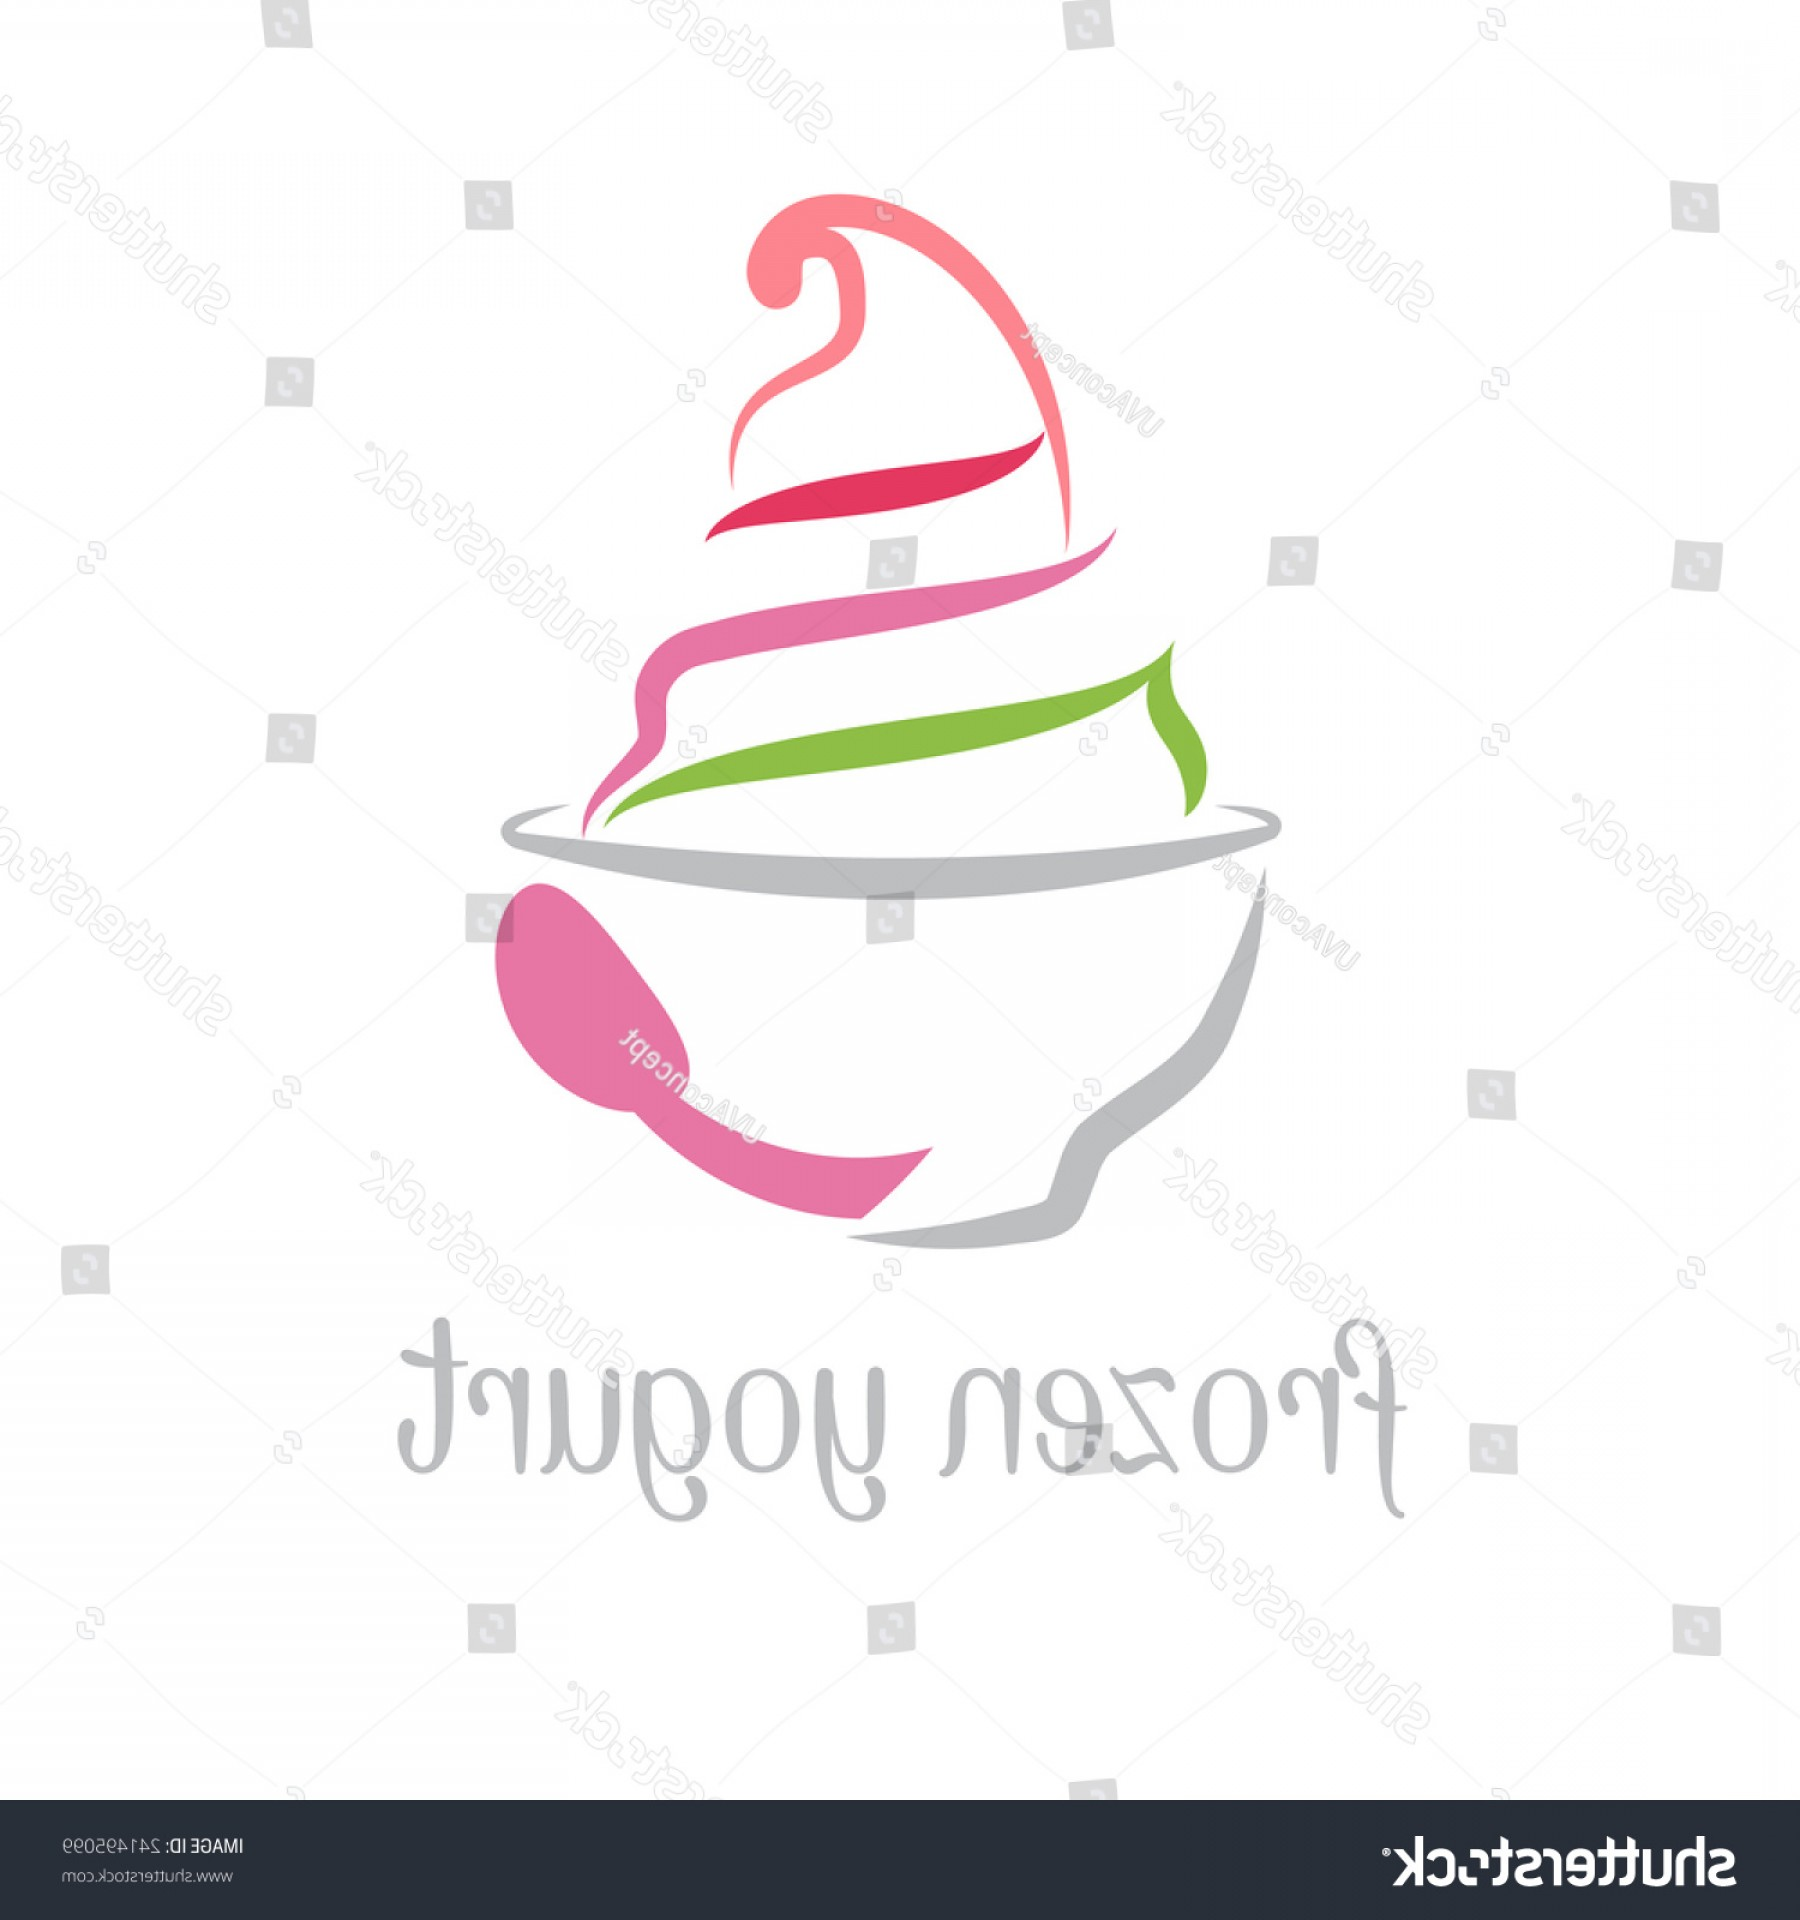 Yogurt Vector: Illustration Concept Frozen Yogurt Vector